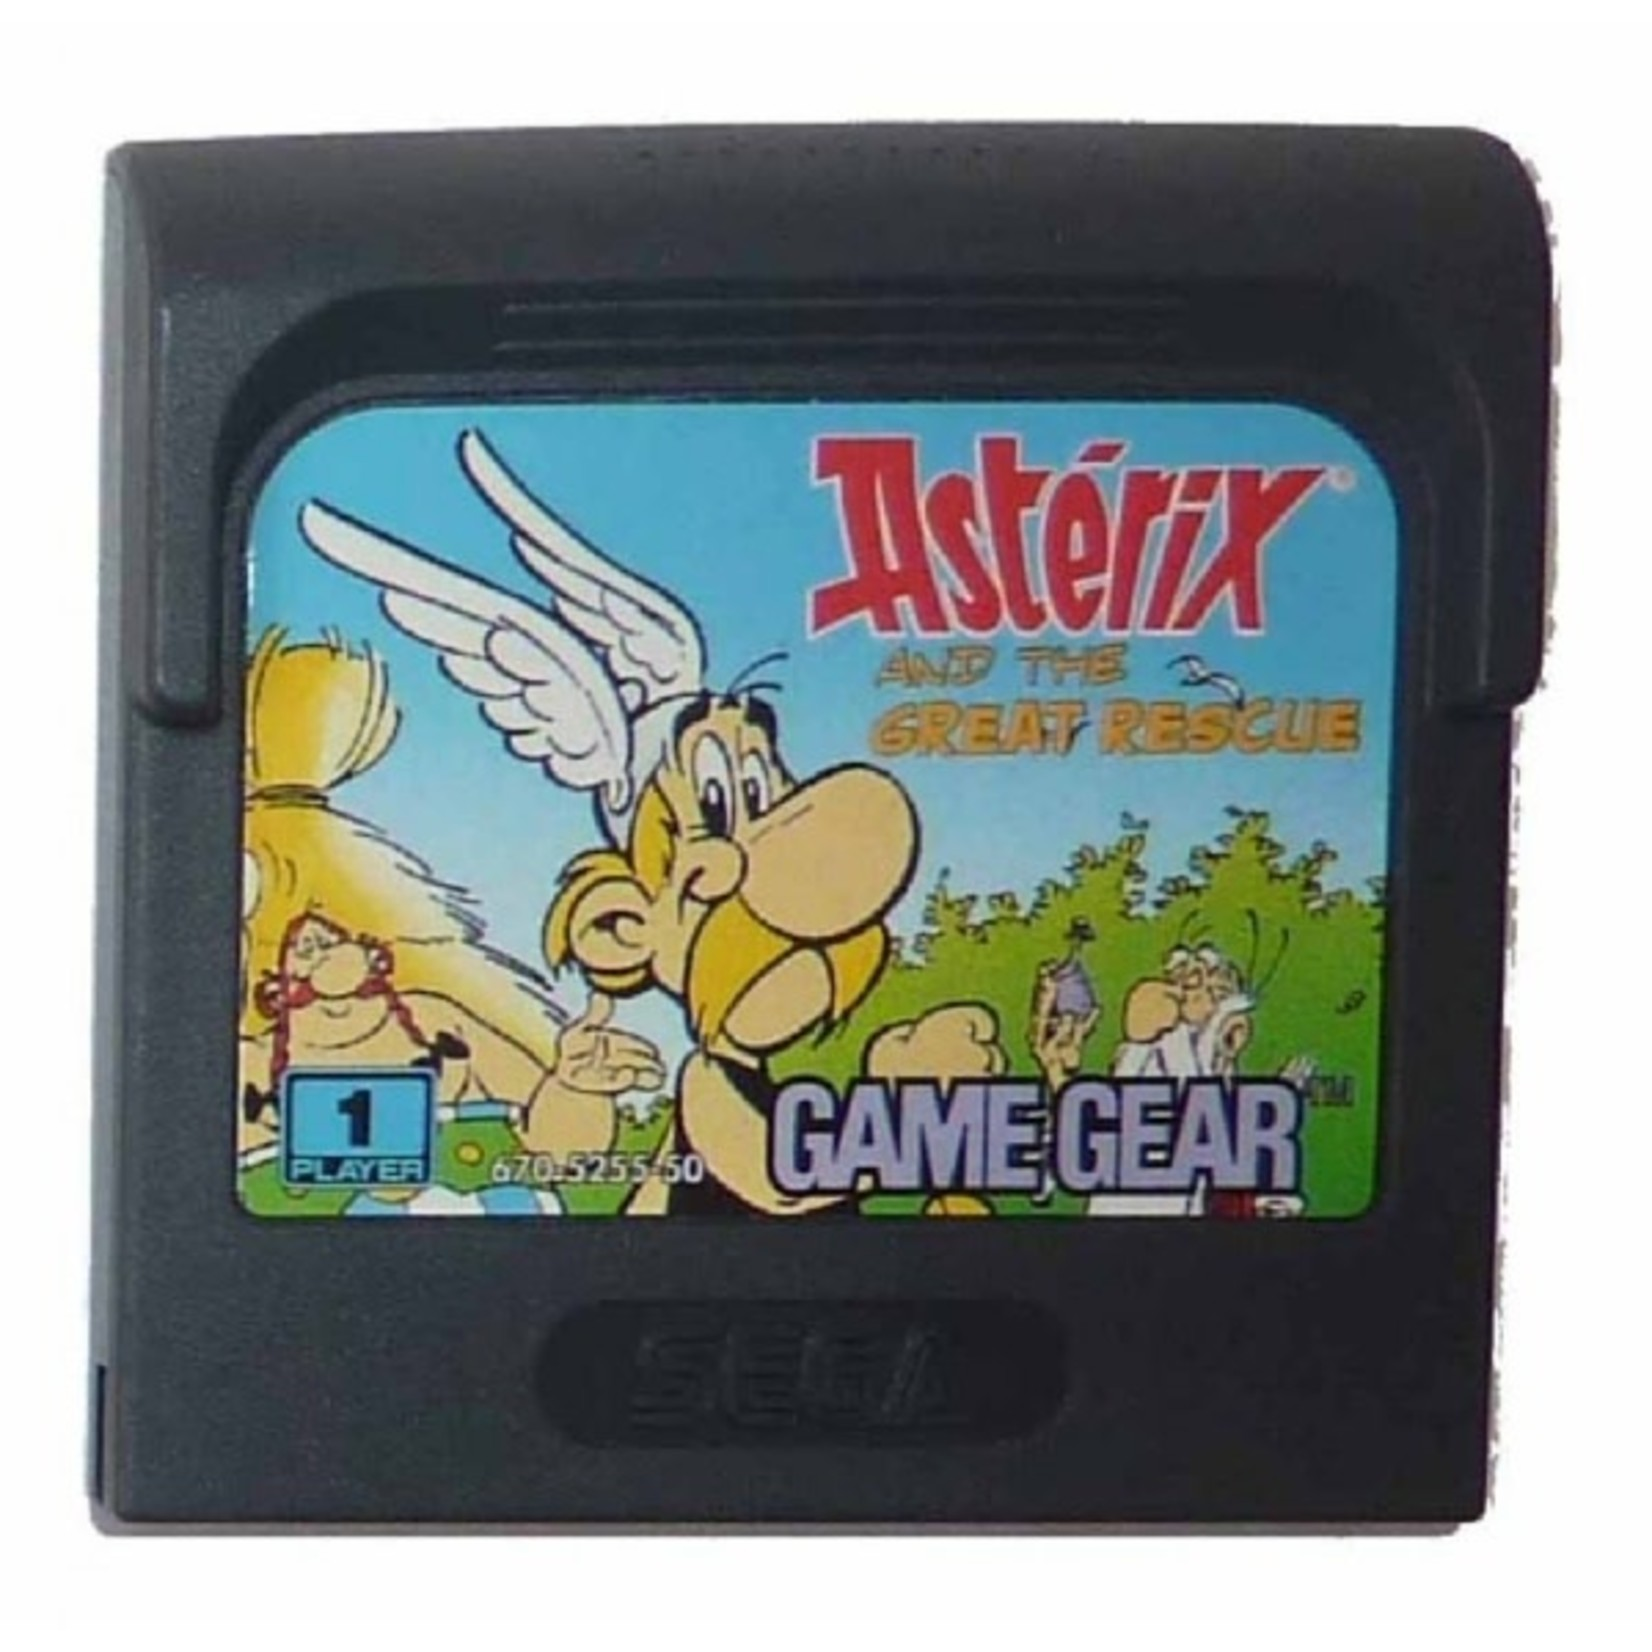 GGU-Asterix And The Great Rescue (CARTRIDGE)